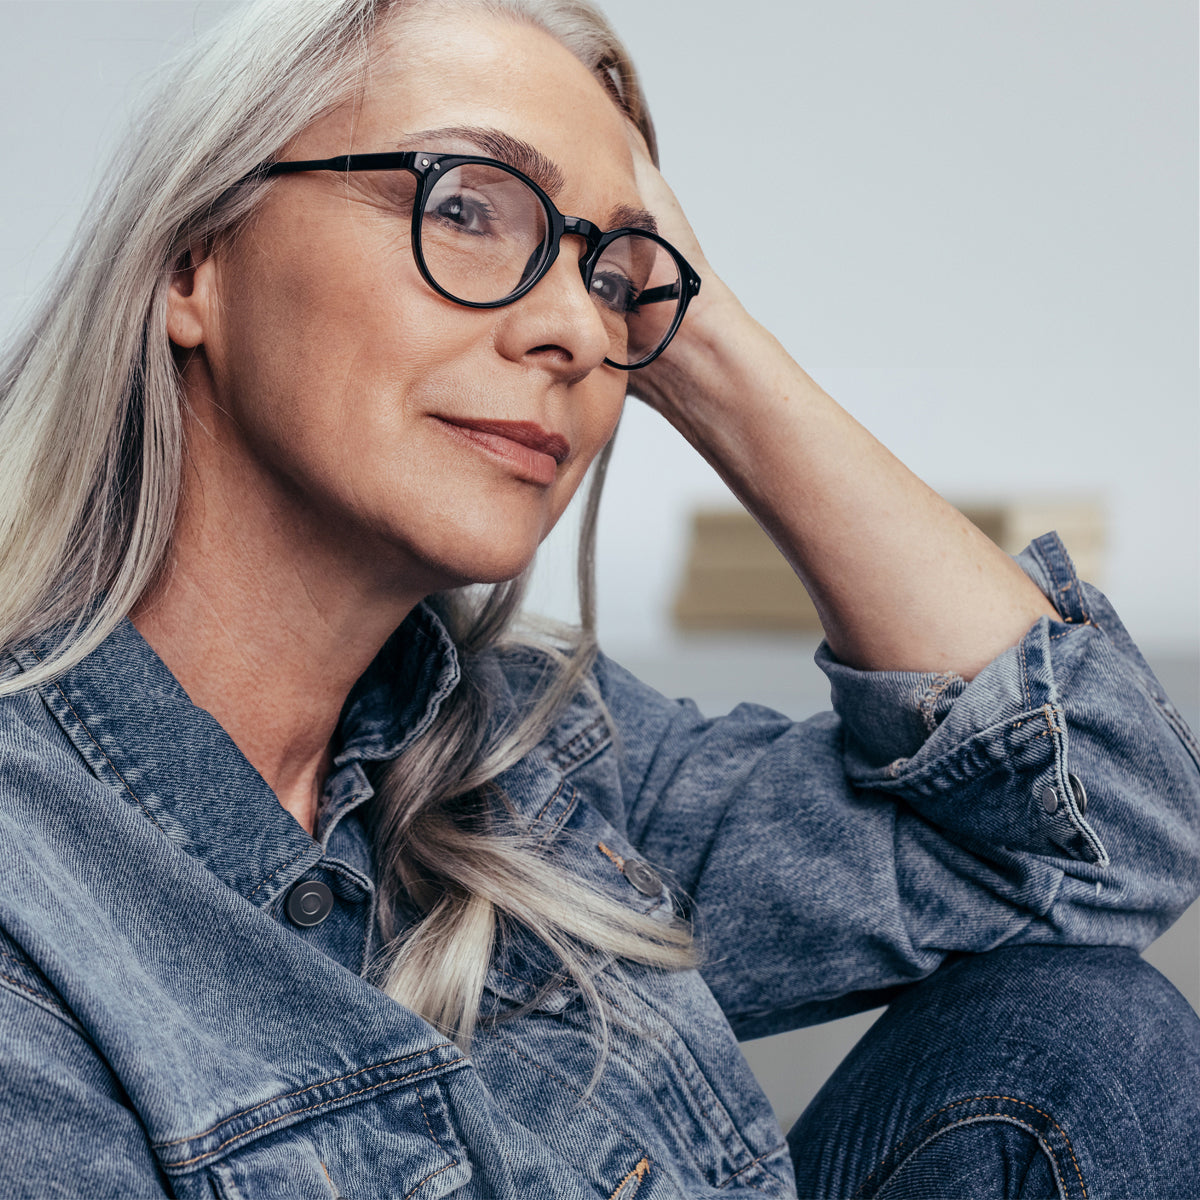 Older woman thinking and looking off camera